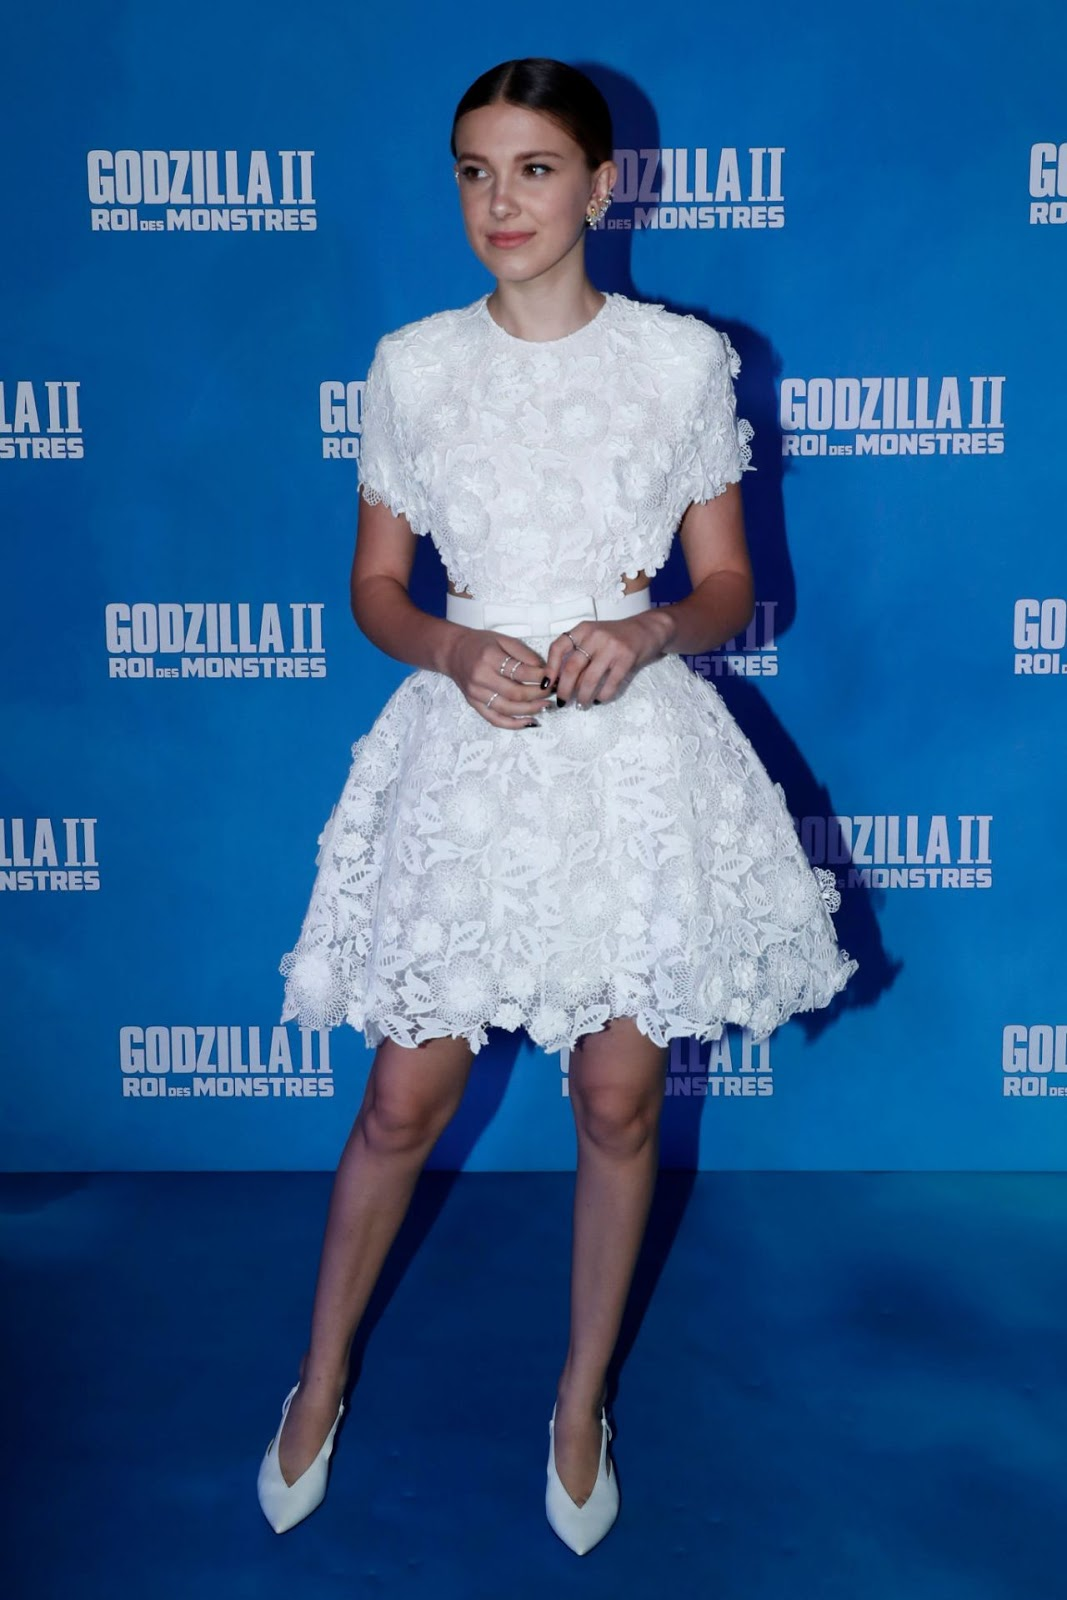 Millie Bobby Brown, 15, displays her chic sense of style in a floral embellished skater dress at the Godzilla premiere in Paris